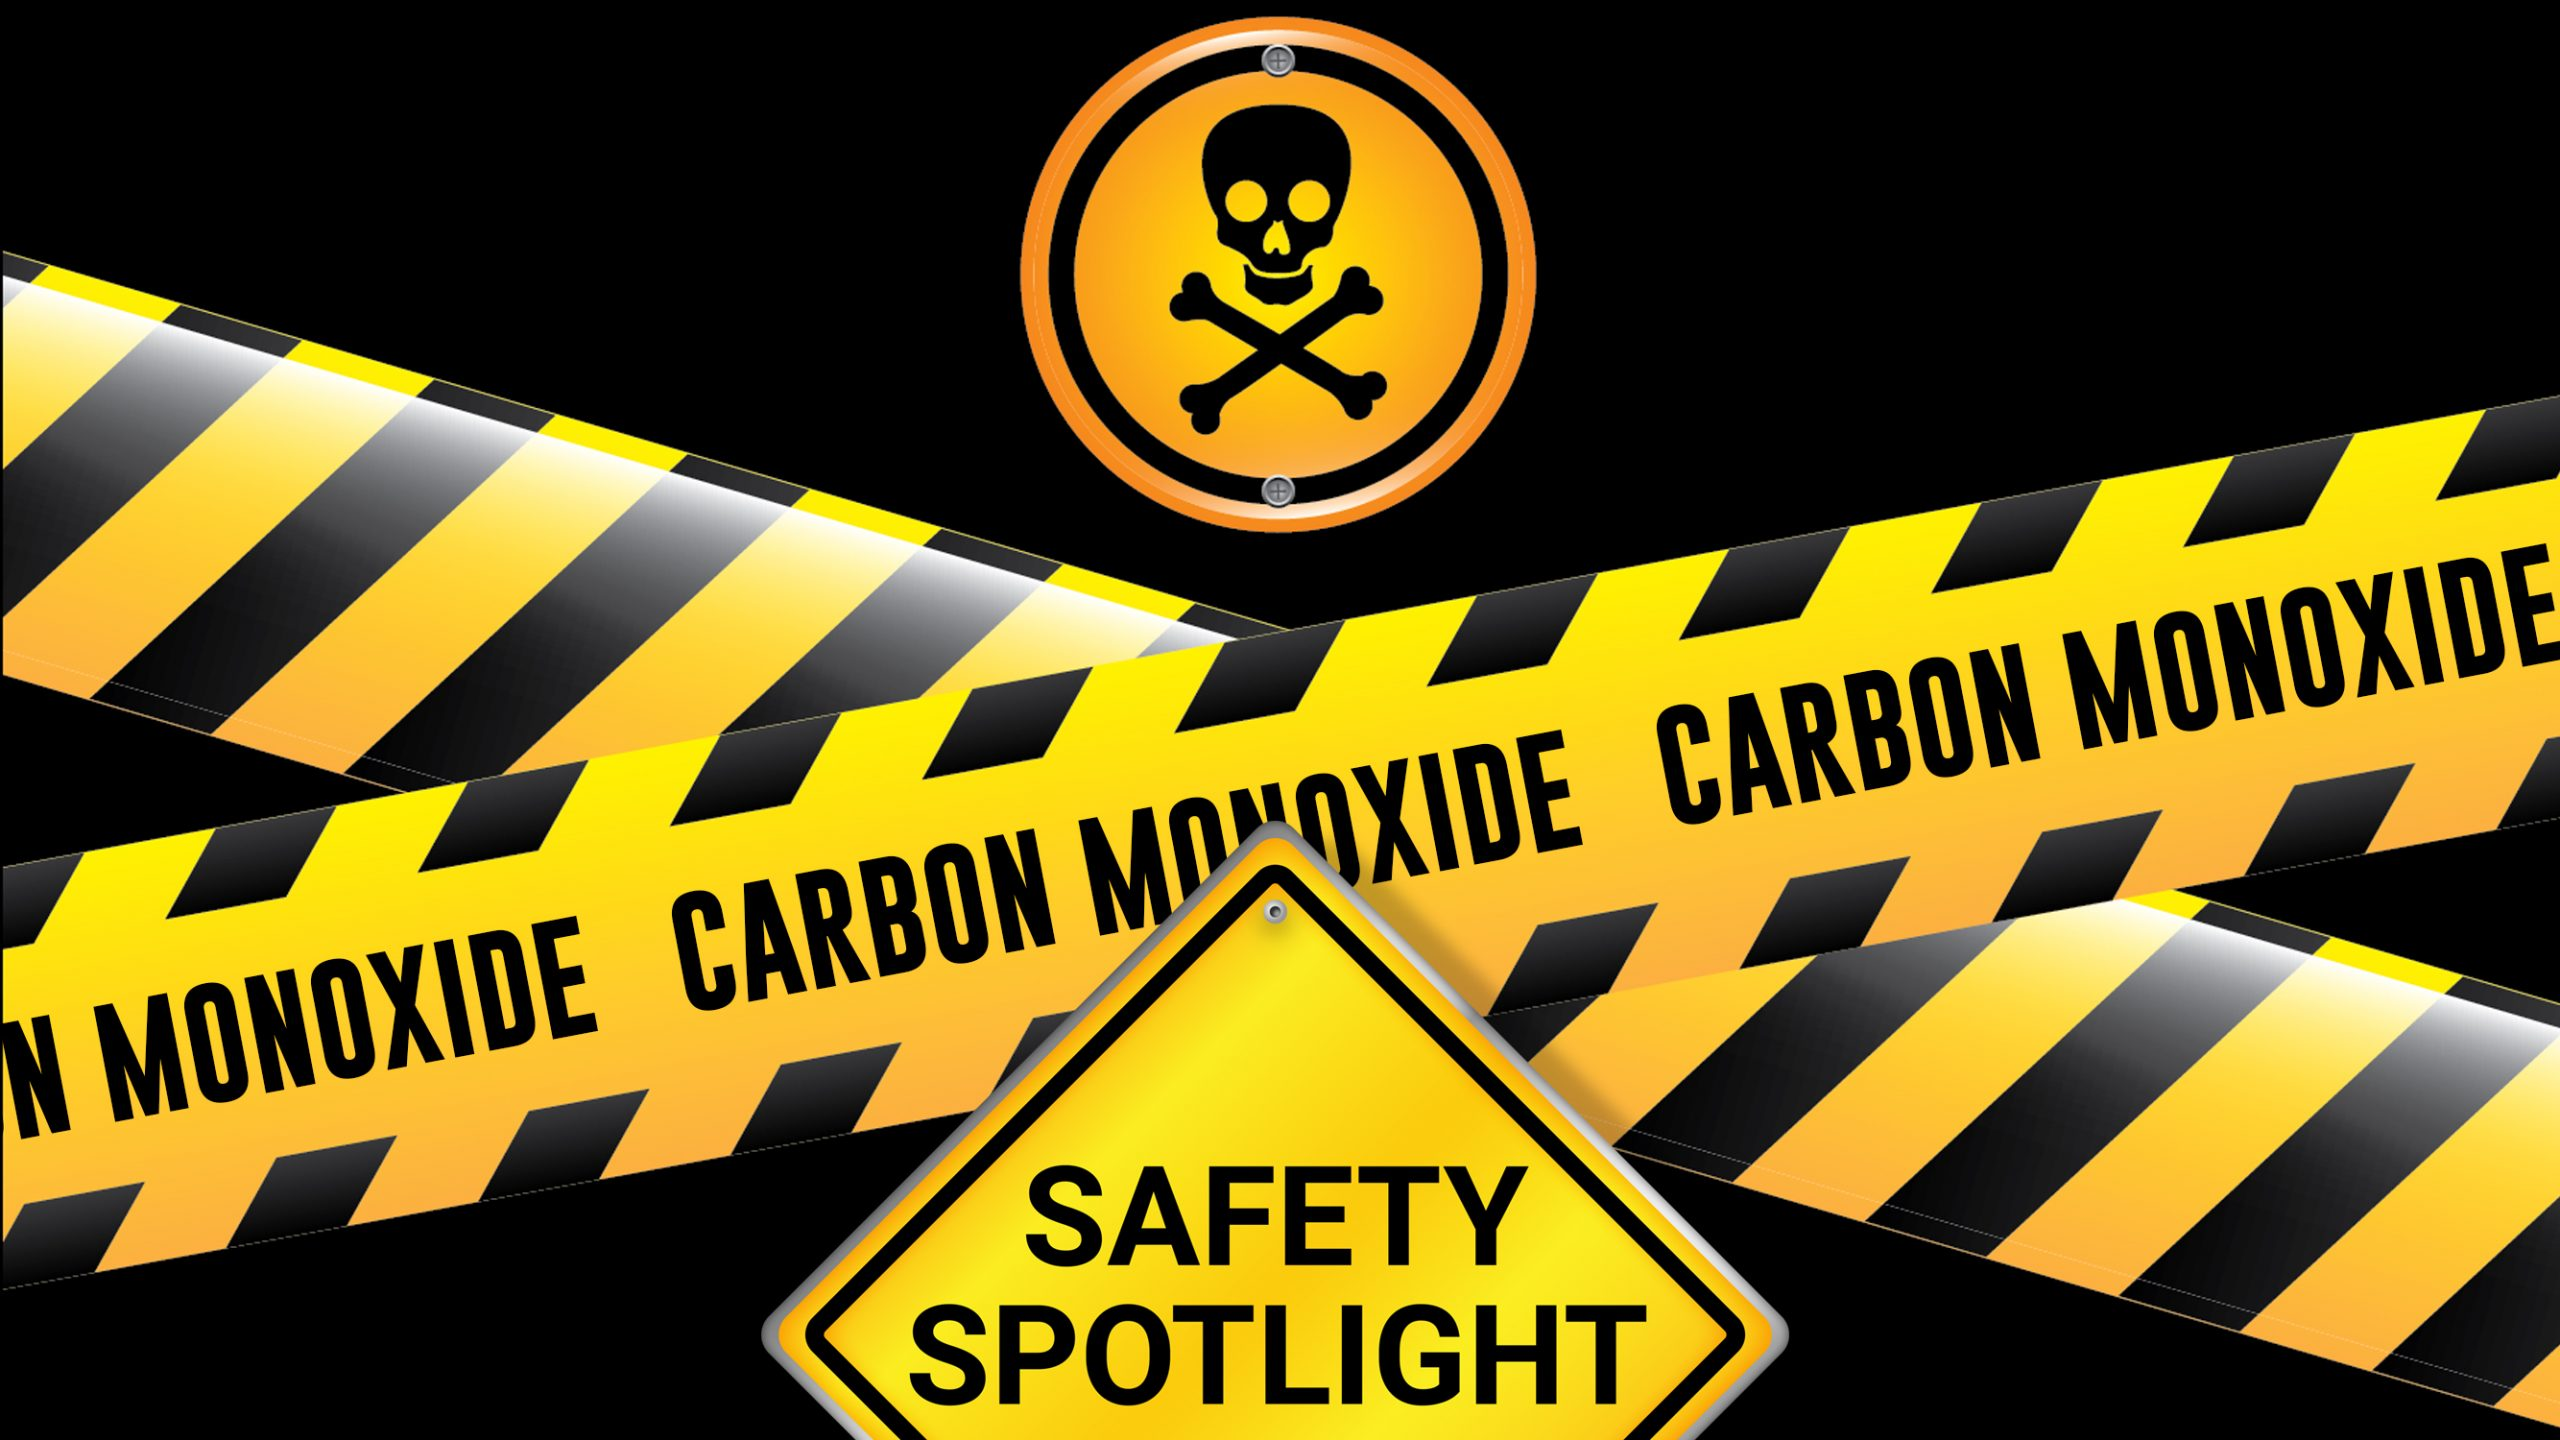 Safety Spotlight: Carbon Monoxide